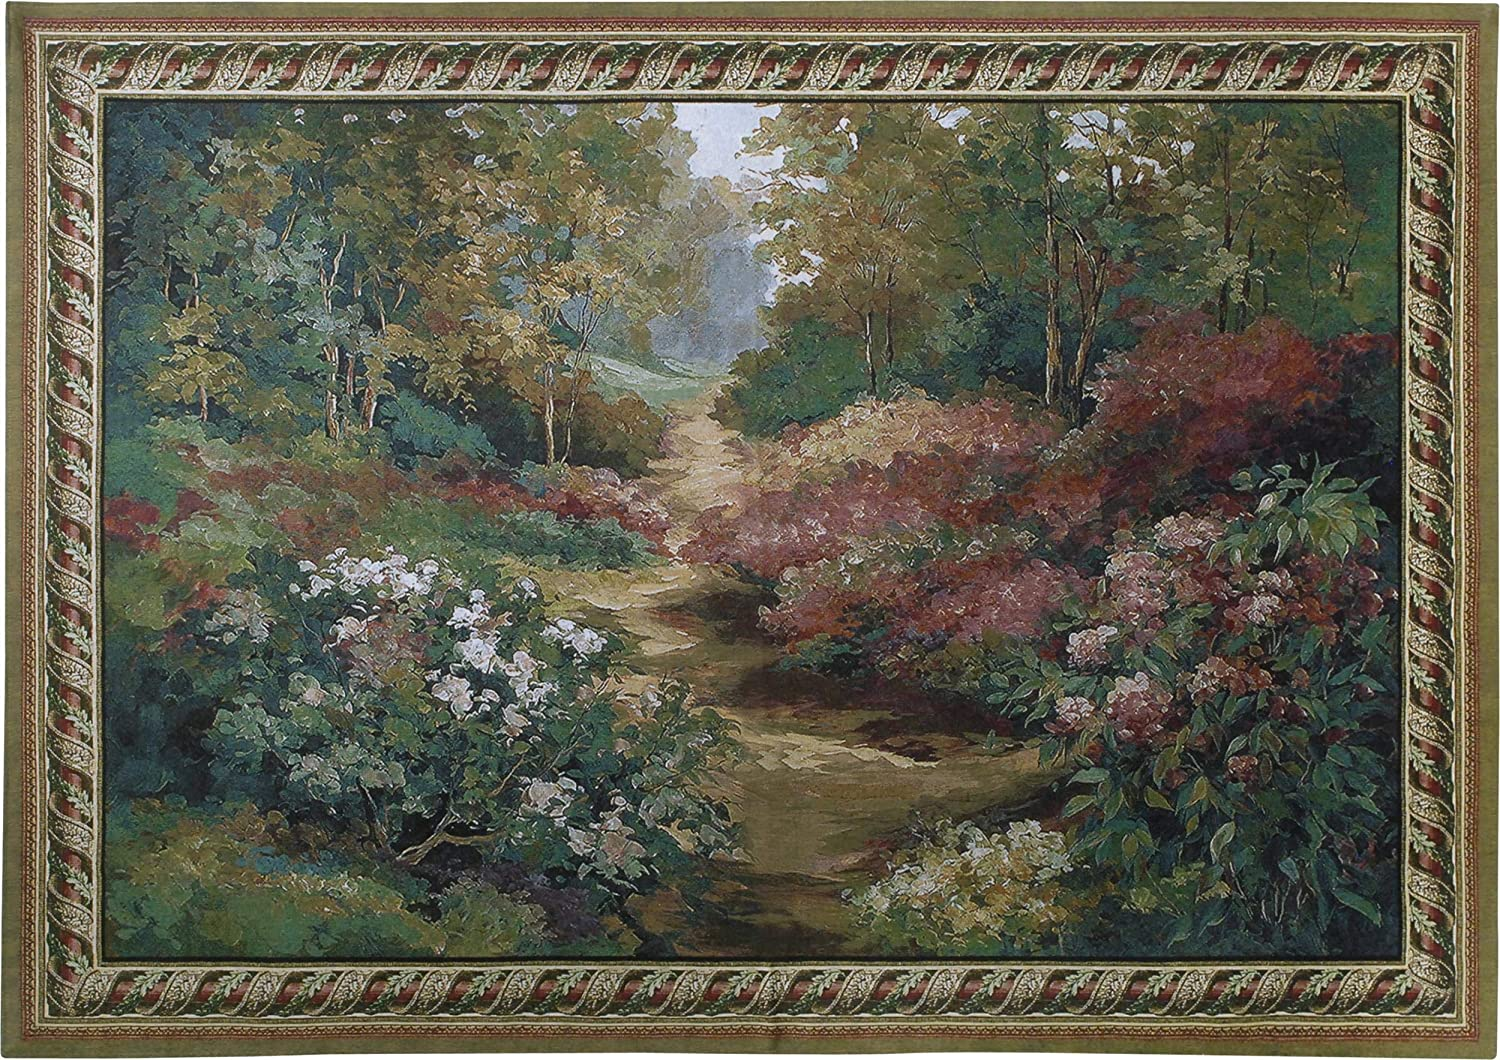 Along the Garden Path by Alix Stefan   Woven Tapestry Wall Art Hanging   Blooming Flowers Nature Trail Artwork   100% Cotton USA Size 53x43